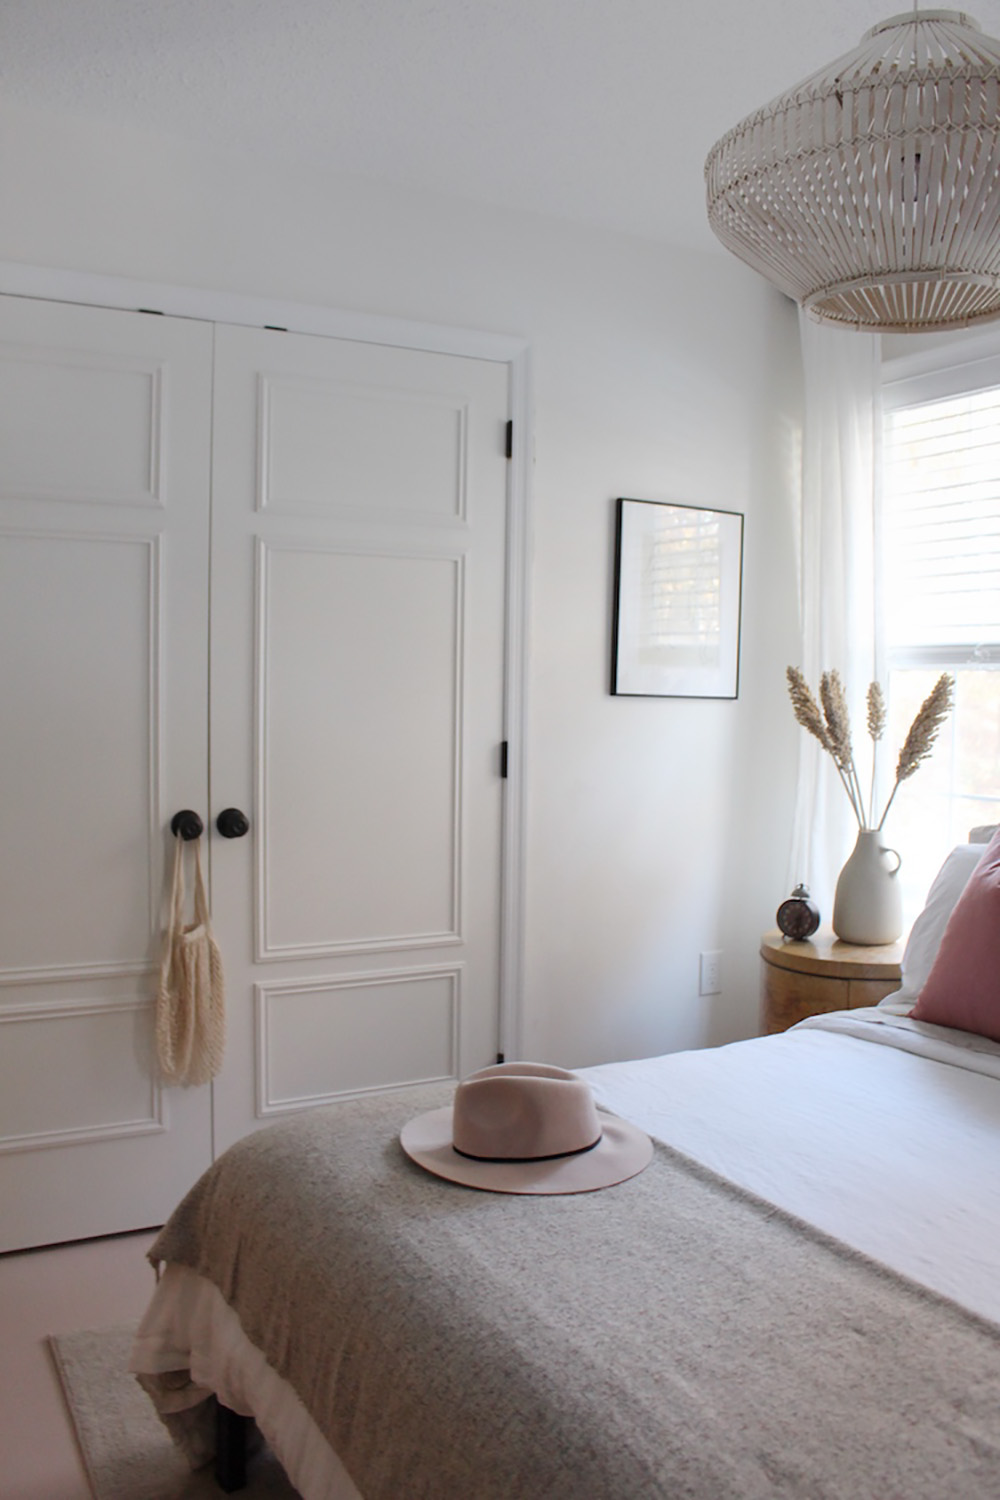 A hats sitting on the end of a bed with a large light above it.